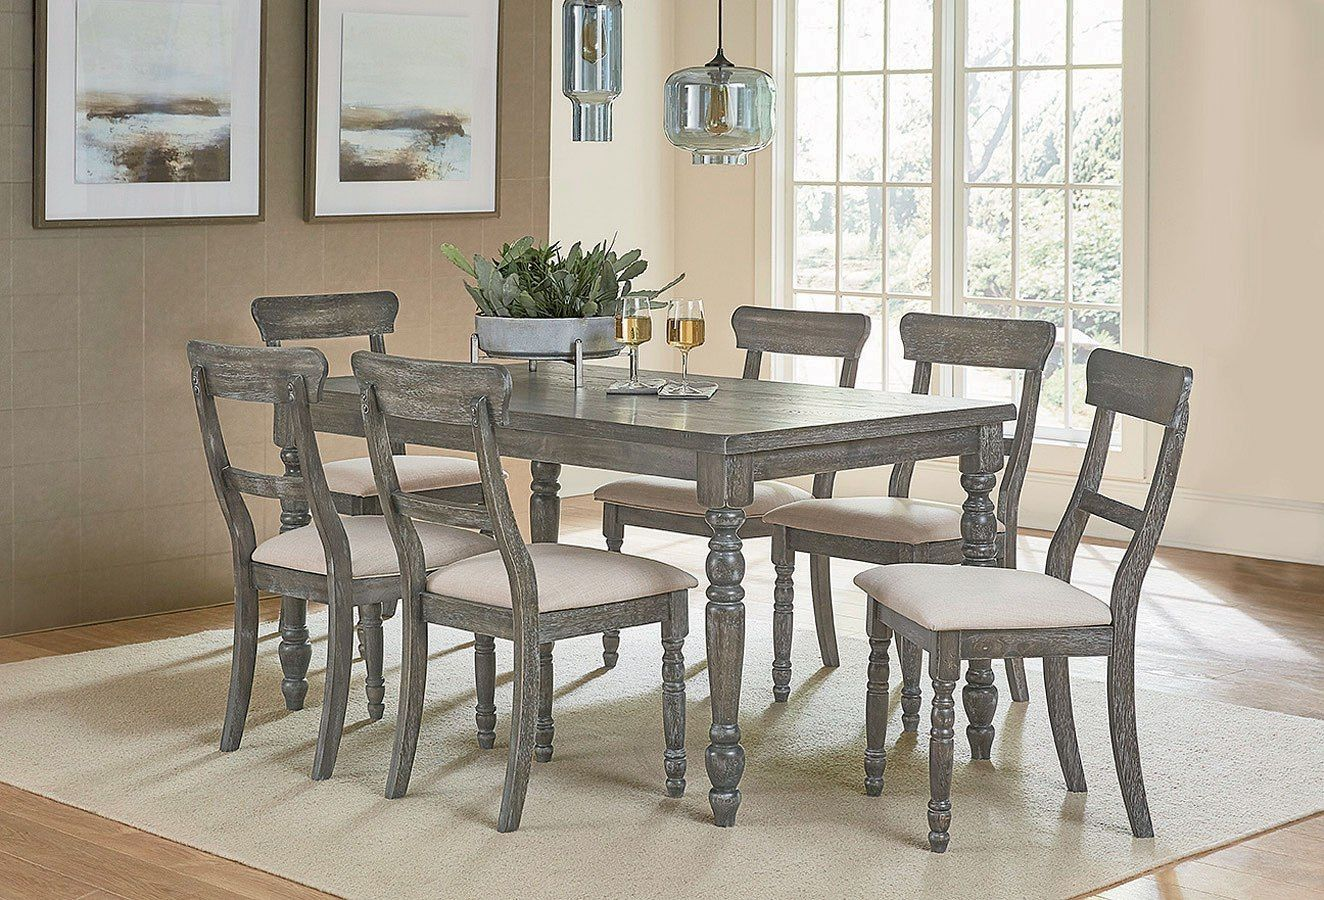 Muses Leg Dining Room Set W Ladderback Chairs Dining Table In